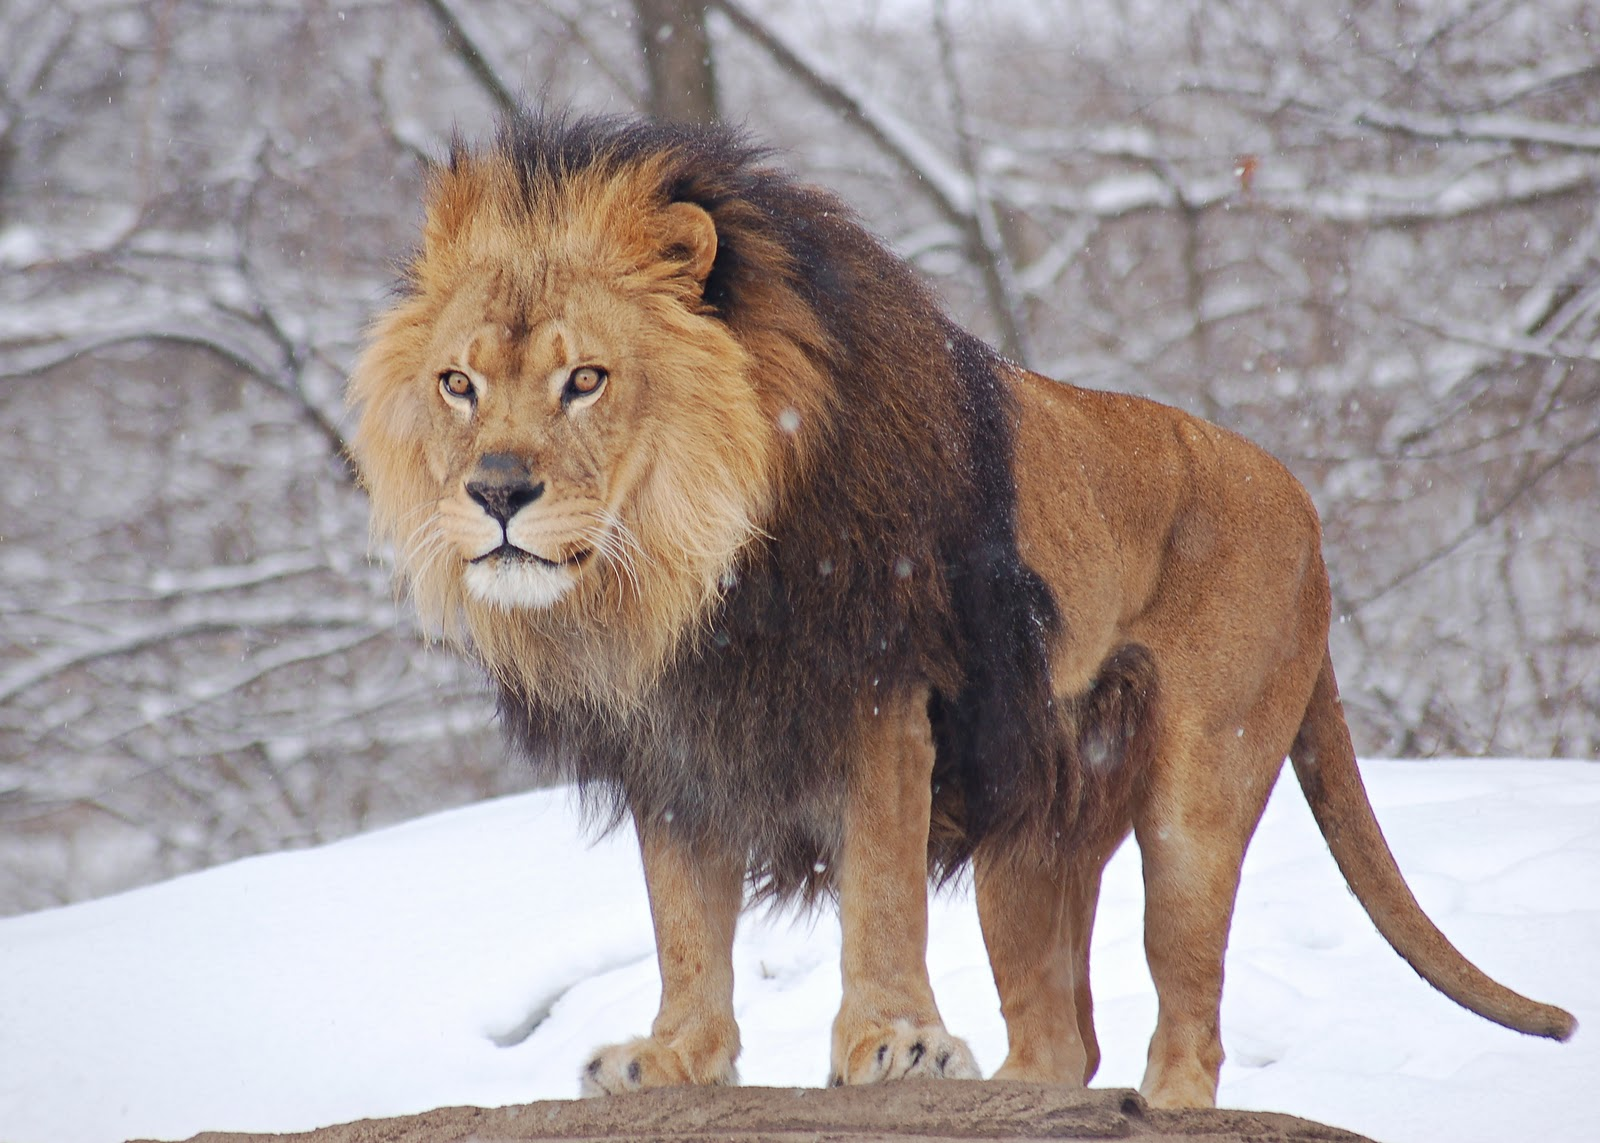 Libra Wikipedia Designaholism Photoshop Morphing Libra A Mix Of Lion And Zebra